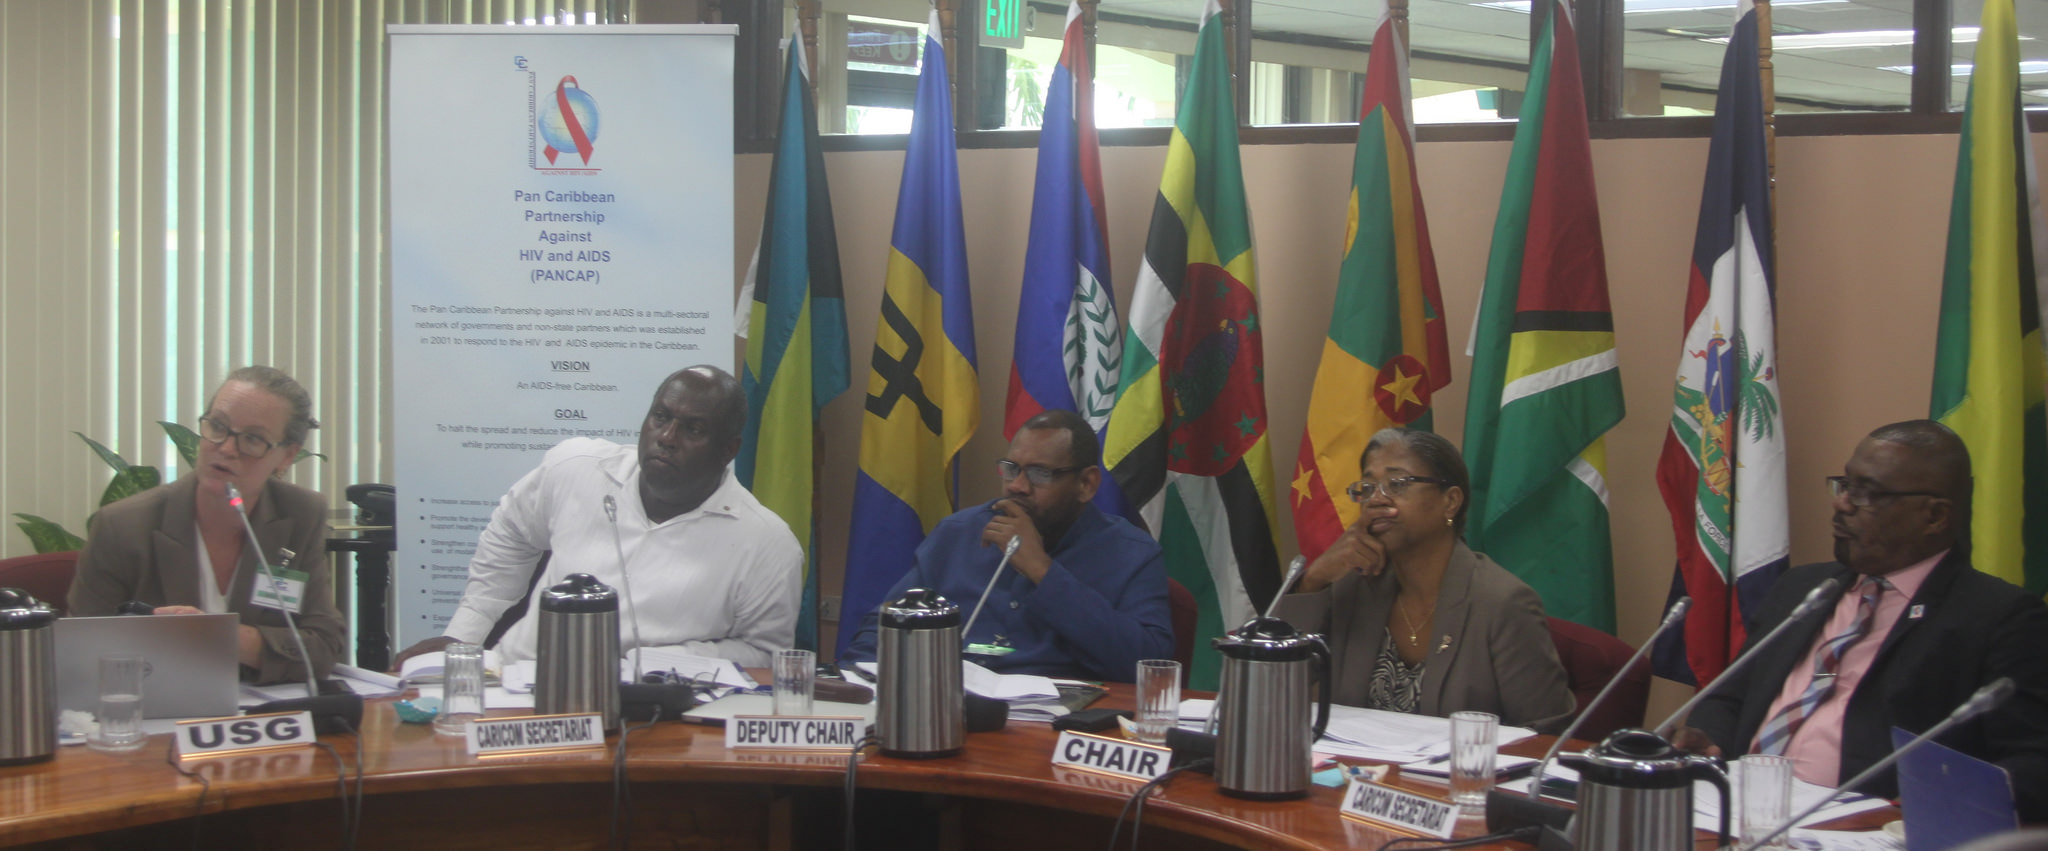 25th Meeting of the Executive Board of PANCAP and the 12th Meeting of the Regional Coordinating Mechanism for the Global Fund Projects – LCR, CARICOM Secretariat (7-8 Sept. 2016)